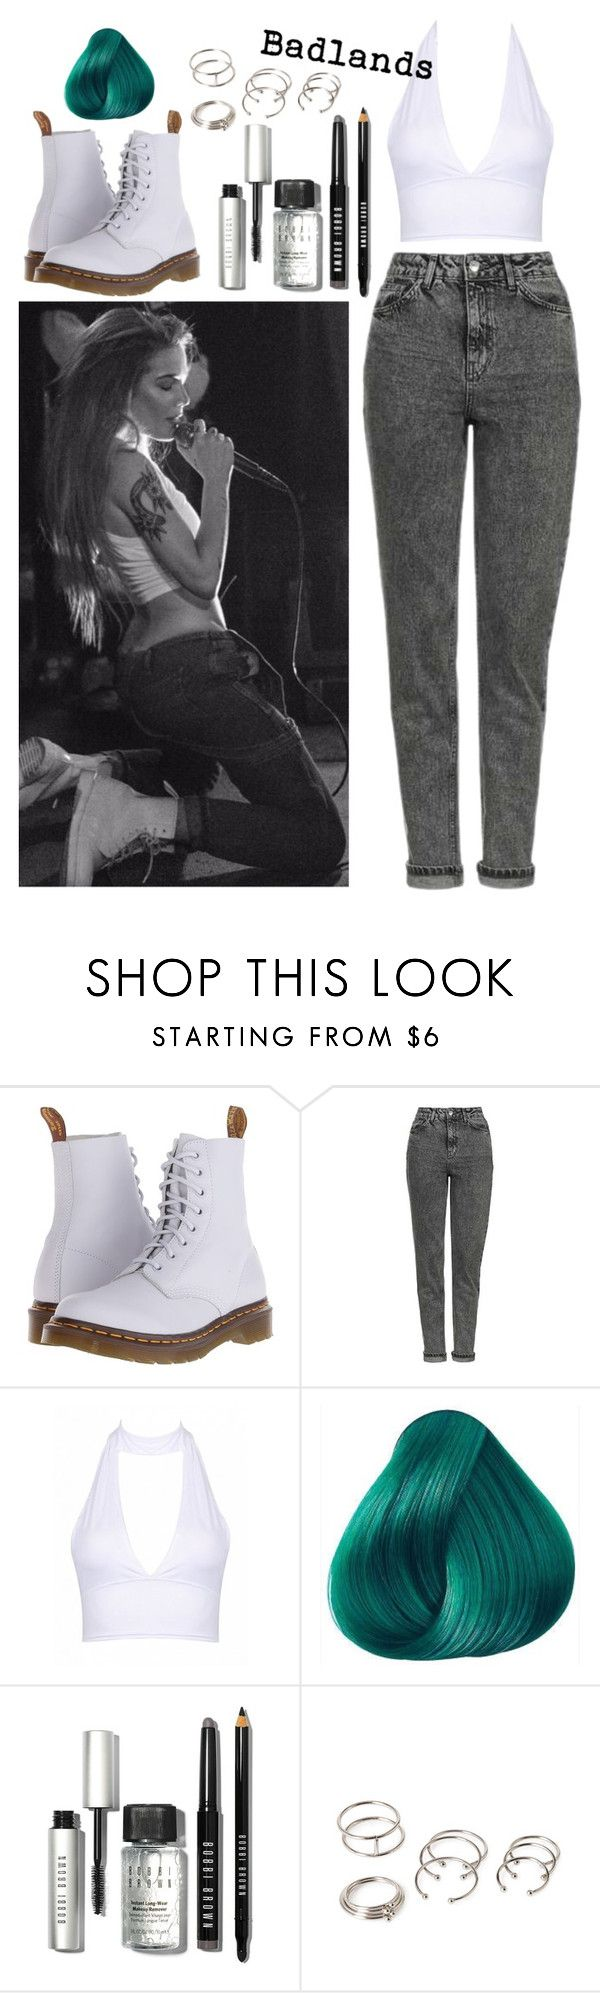 """Halsey Style Steal"" by marymh ❤ liked on Polyvore featuring Dr. Martens, Topshop, Bobbi Brown Cosmetics, Forever 21, denim, Docs, teal, Halter and halsey"